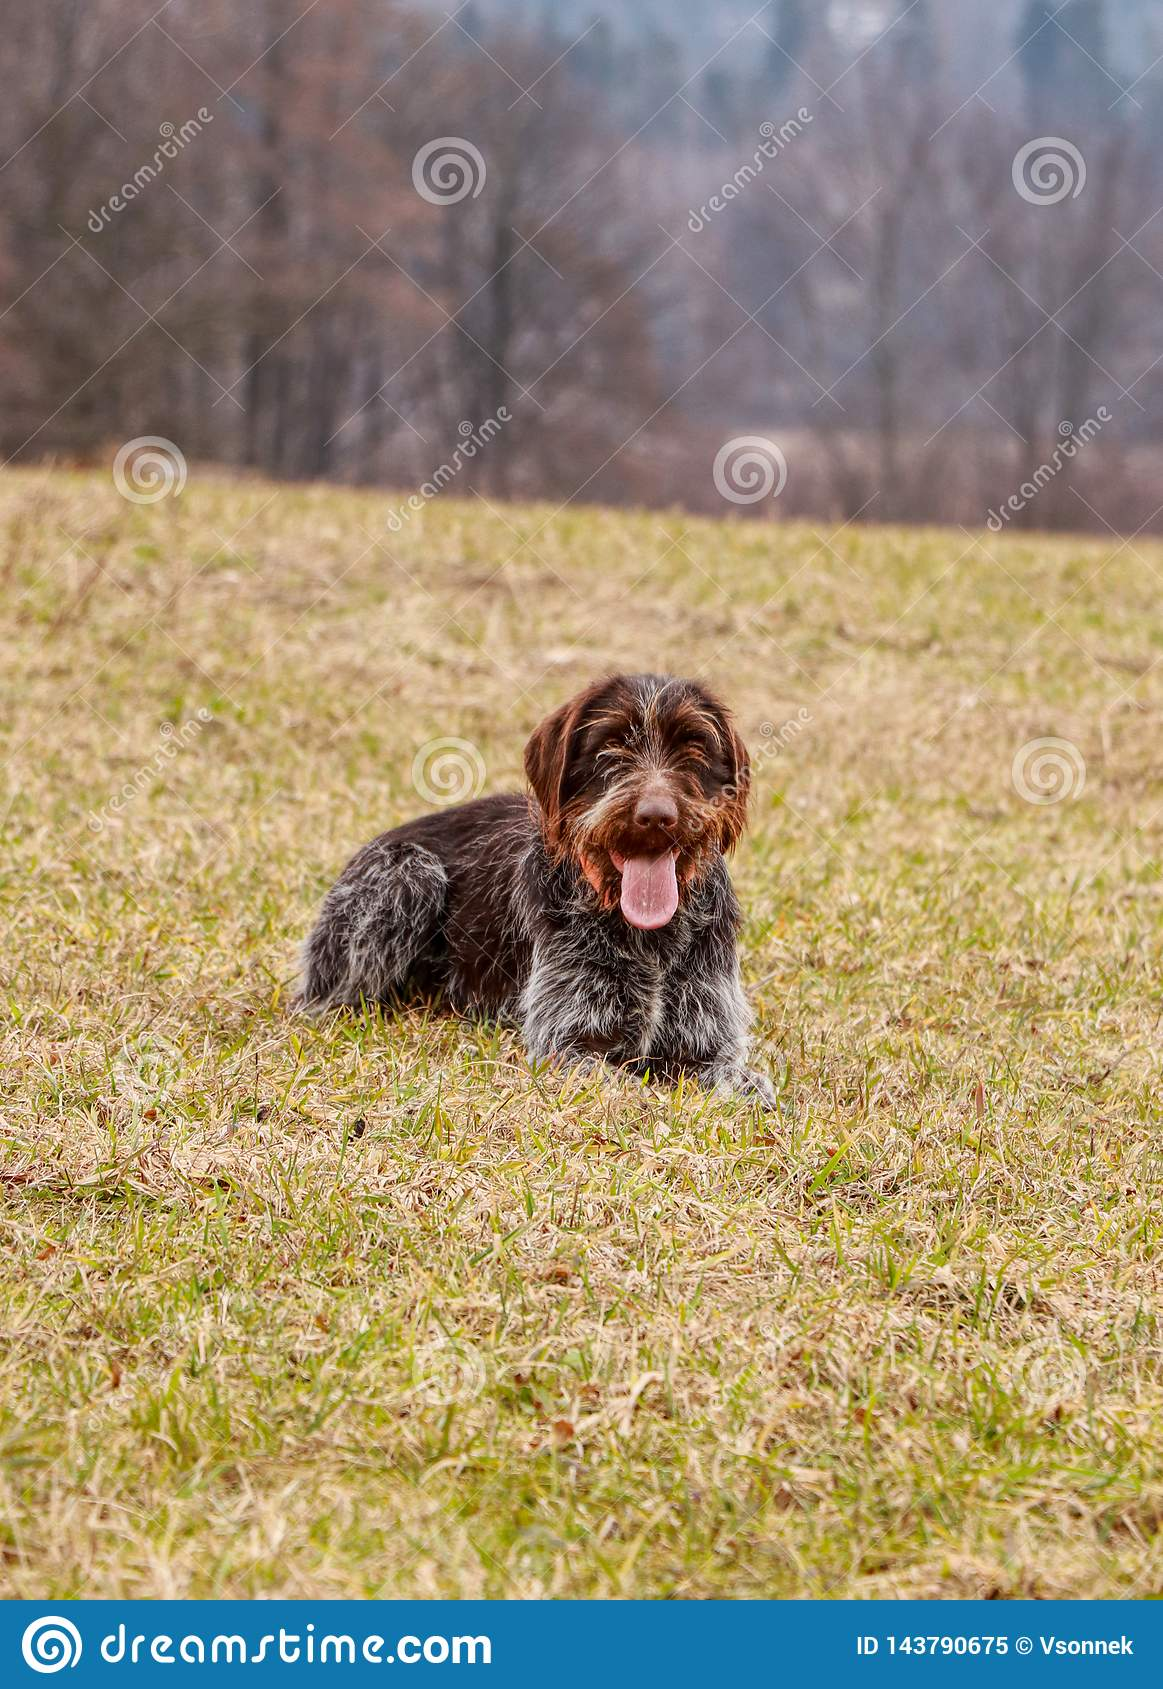 Female dog grin like a Cheshire Cat. Bohemian wire-haired Pointing Griffon lying in grass and waiting on signal for hunt. Dog with